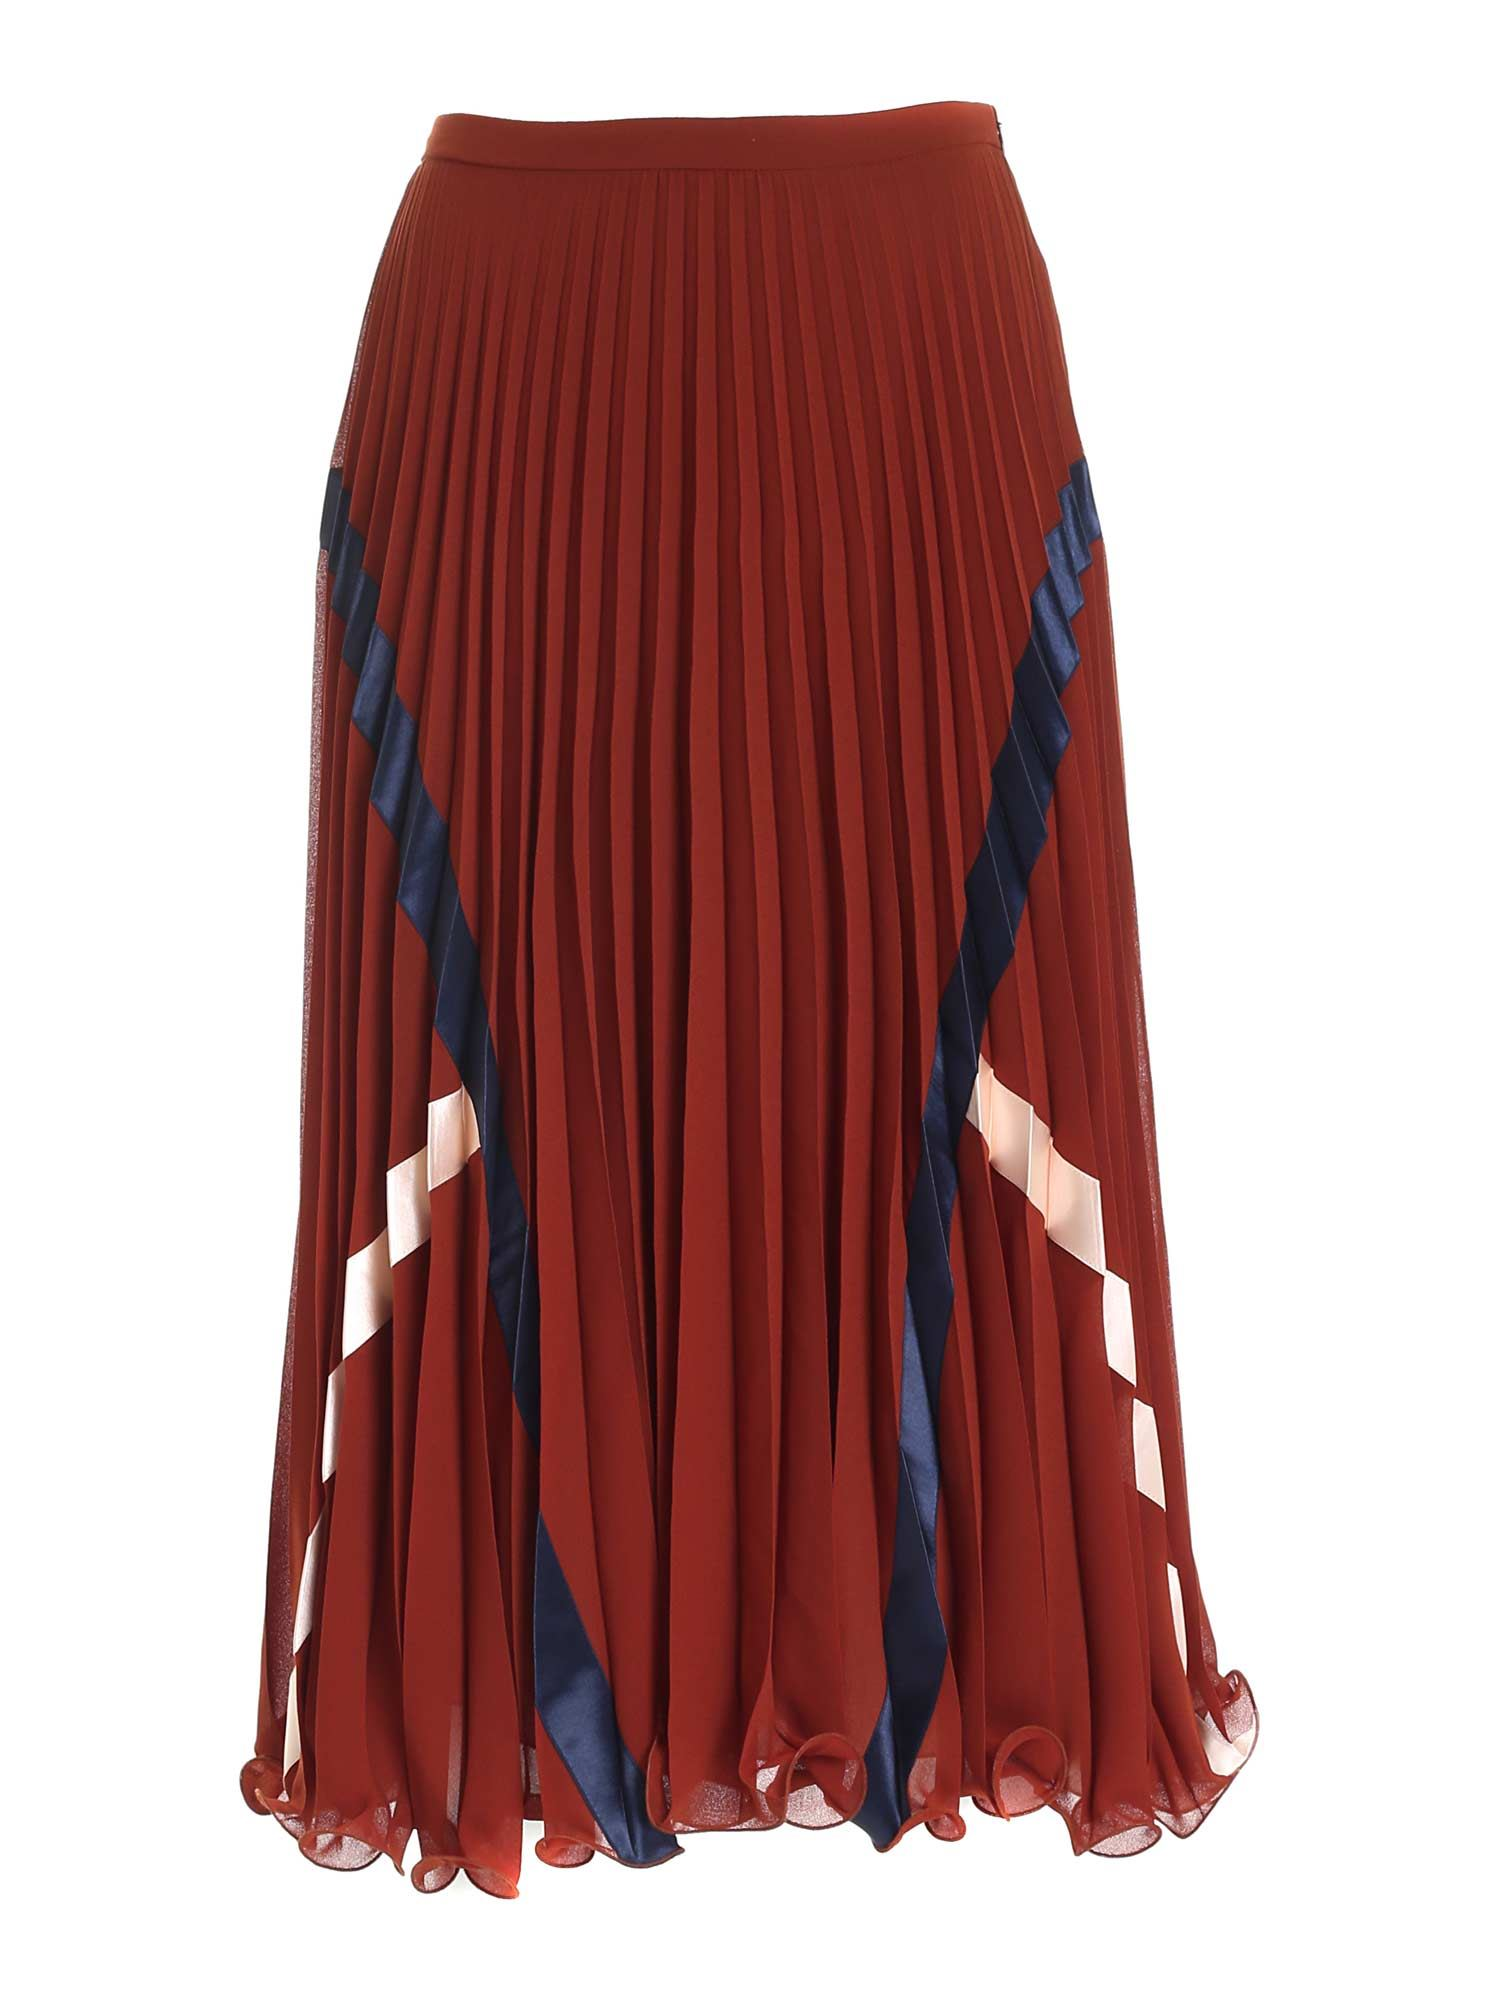 See By Chloé PLEATED SKIRT IN BROWN